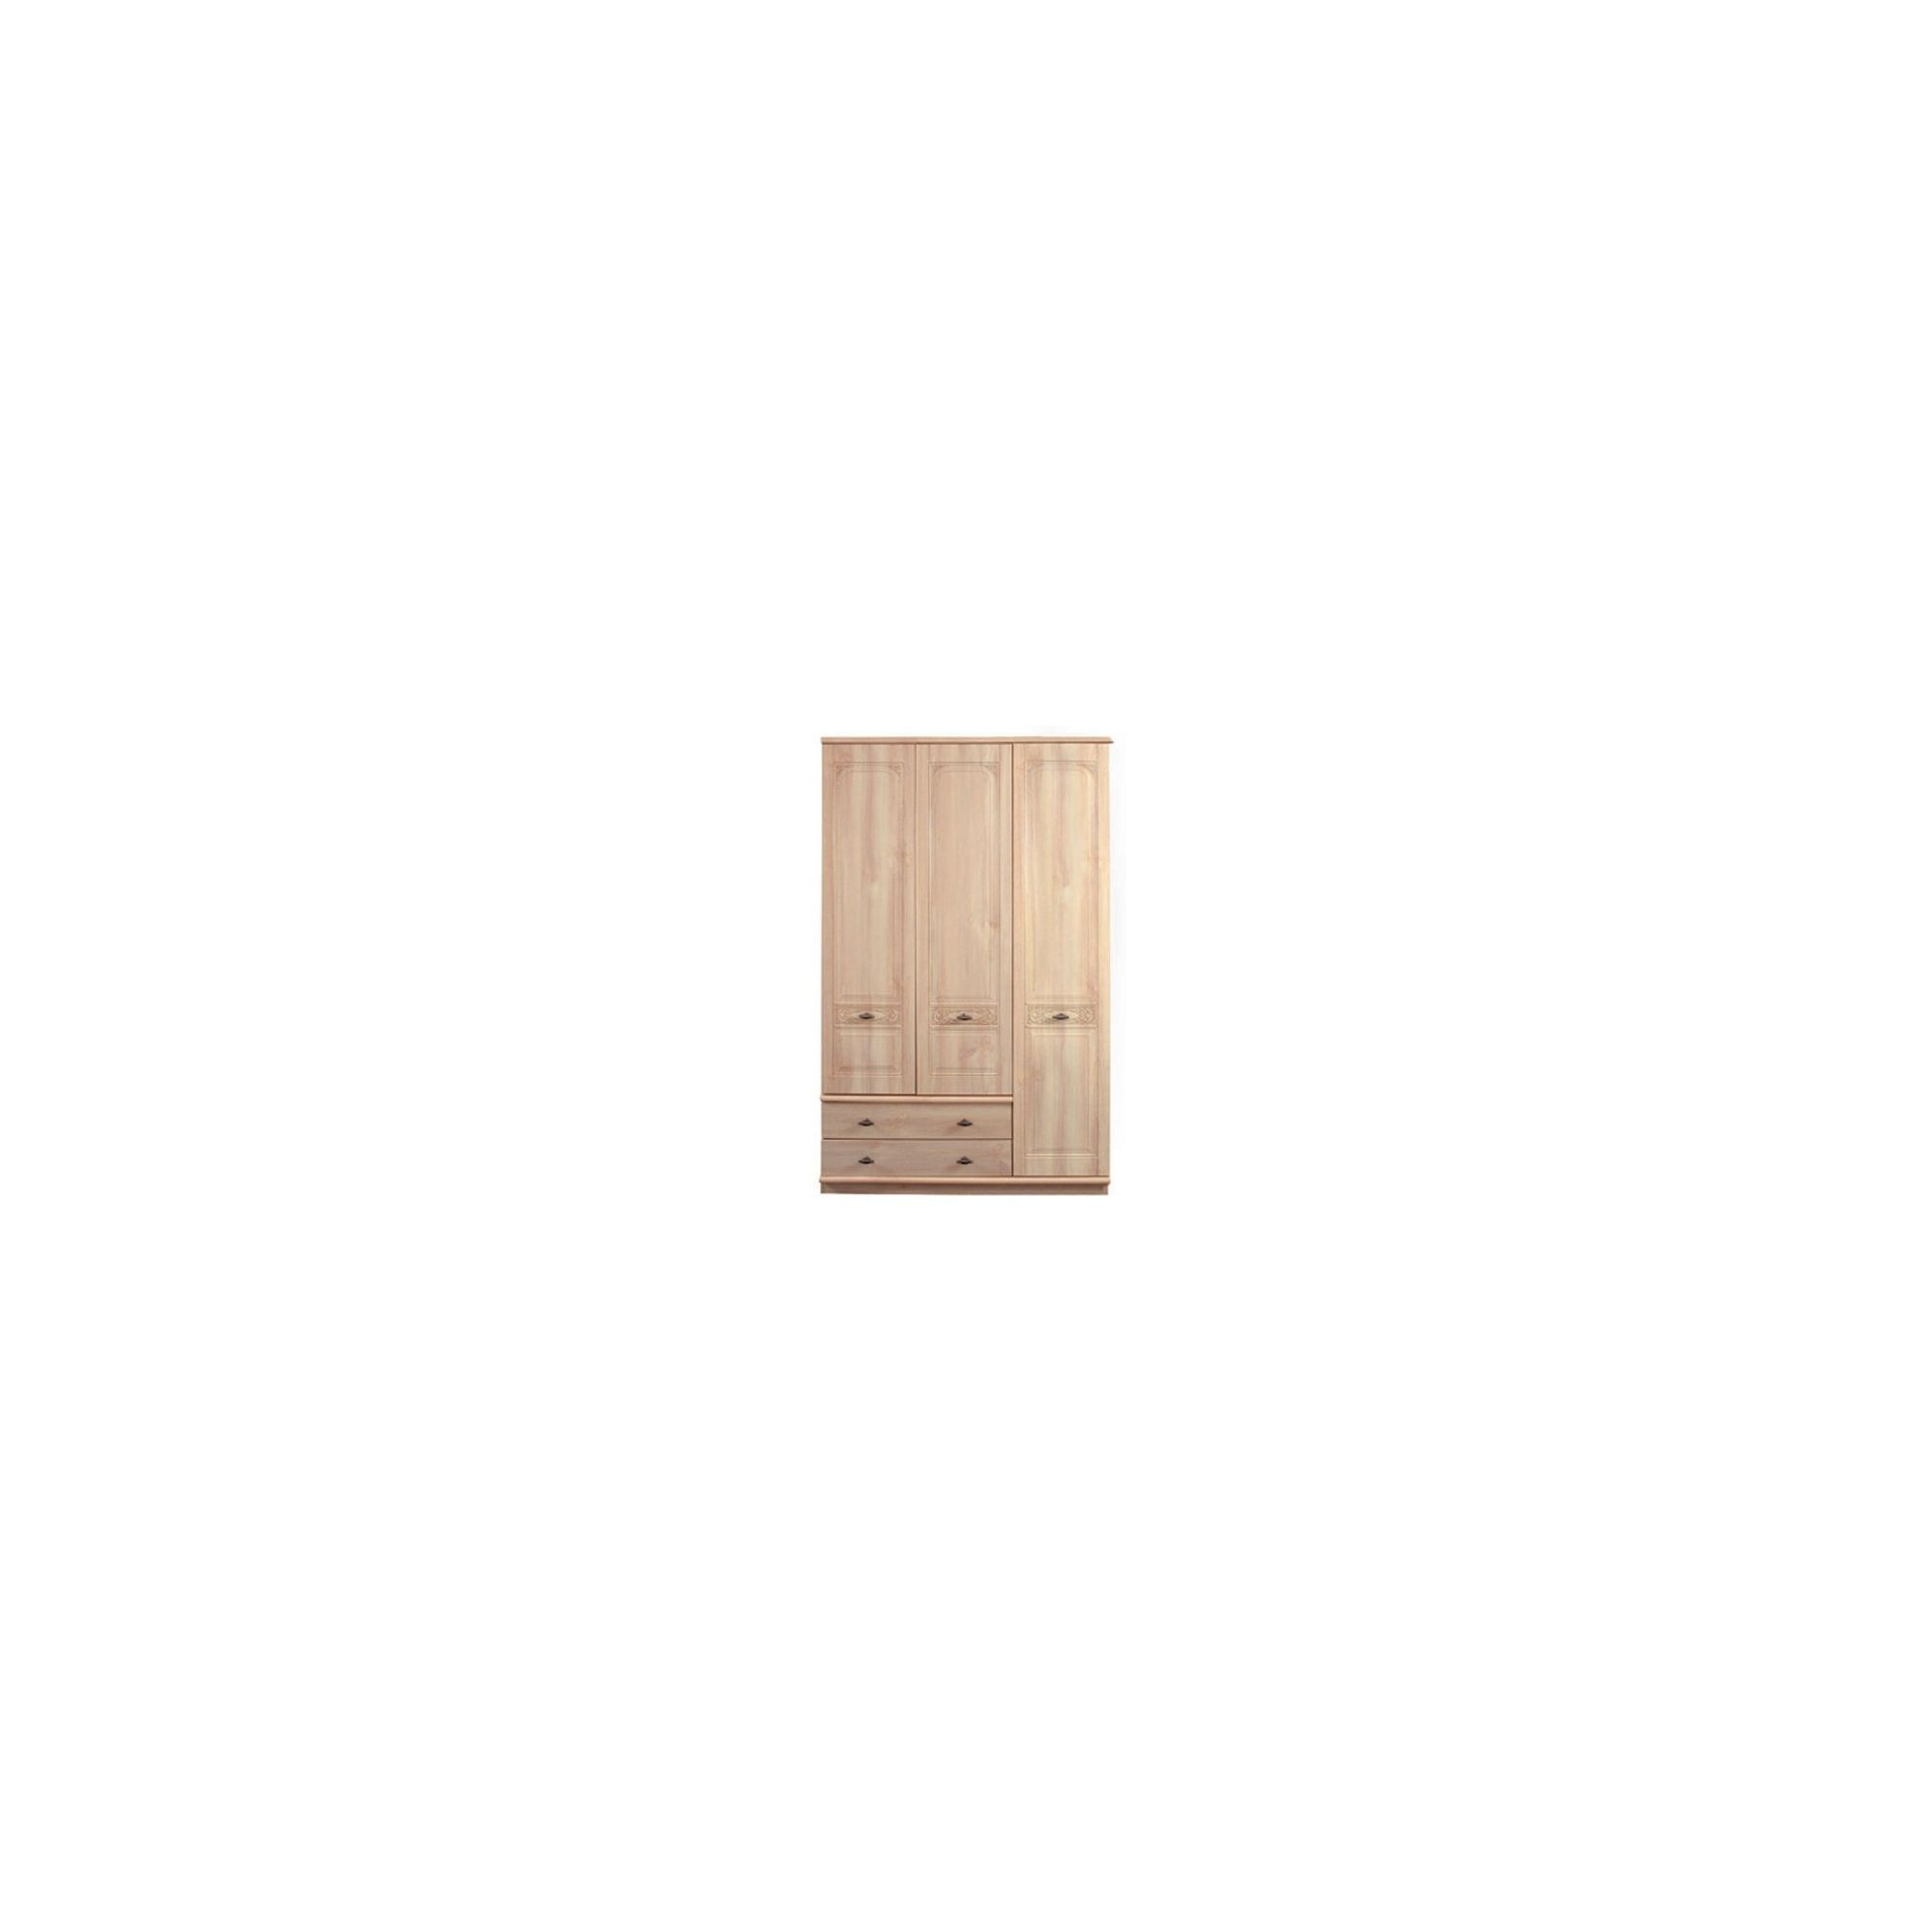 Caxton Florence 2 Drawer Wardrobe in Washed Oak Effect at Tesco Direct